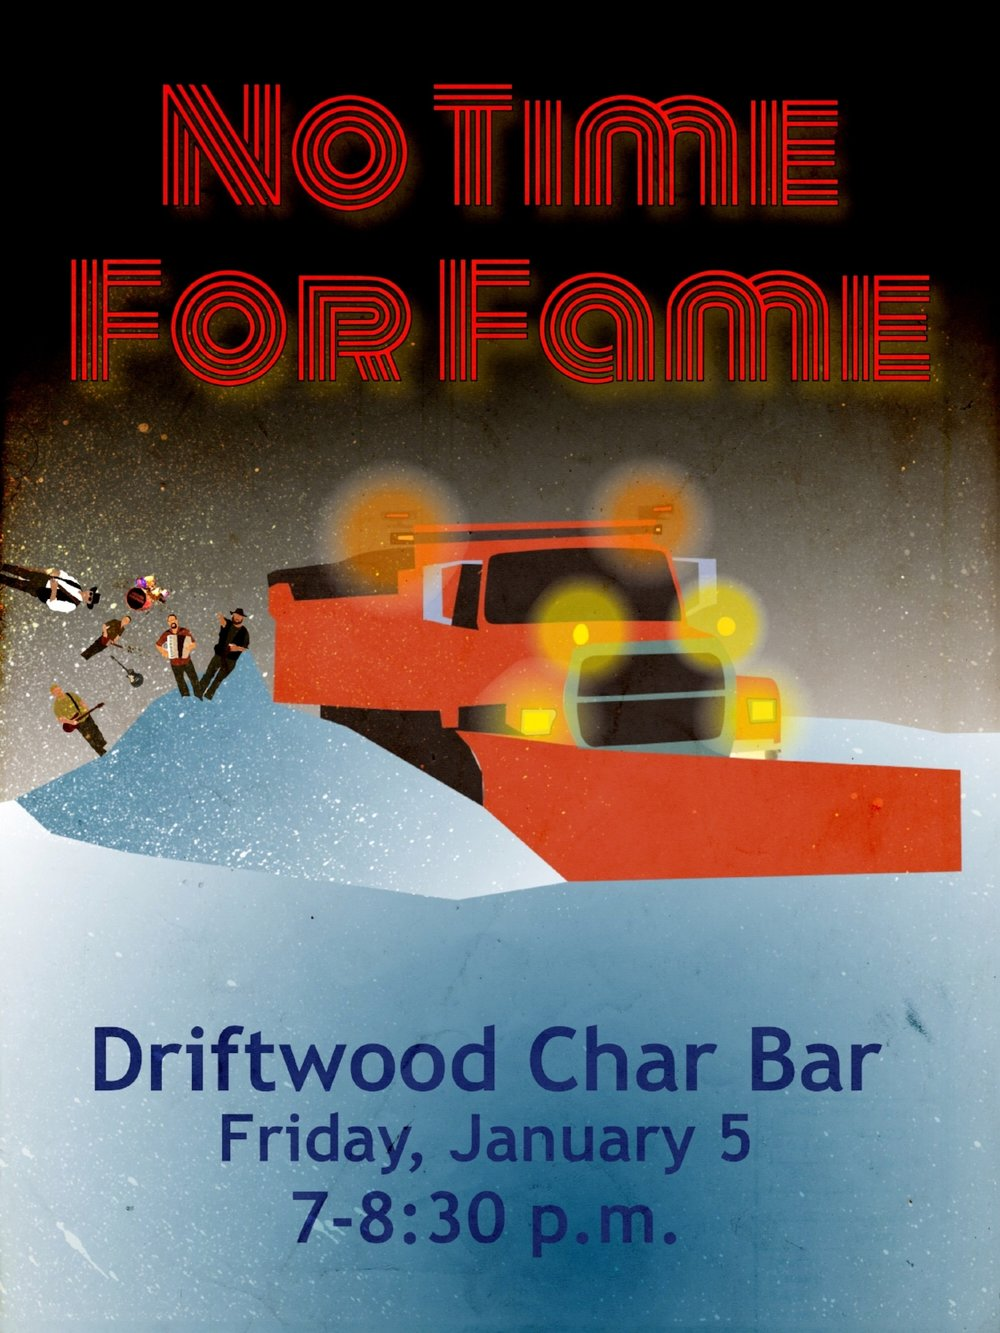 Driftwood char bar - Minneapolis, MNFriday January 5, 20187:00-8:30 pmKick off the new year with No Time For Fame!